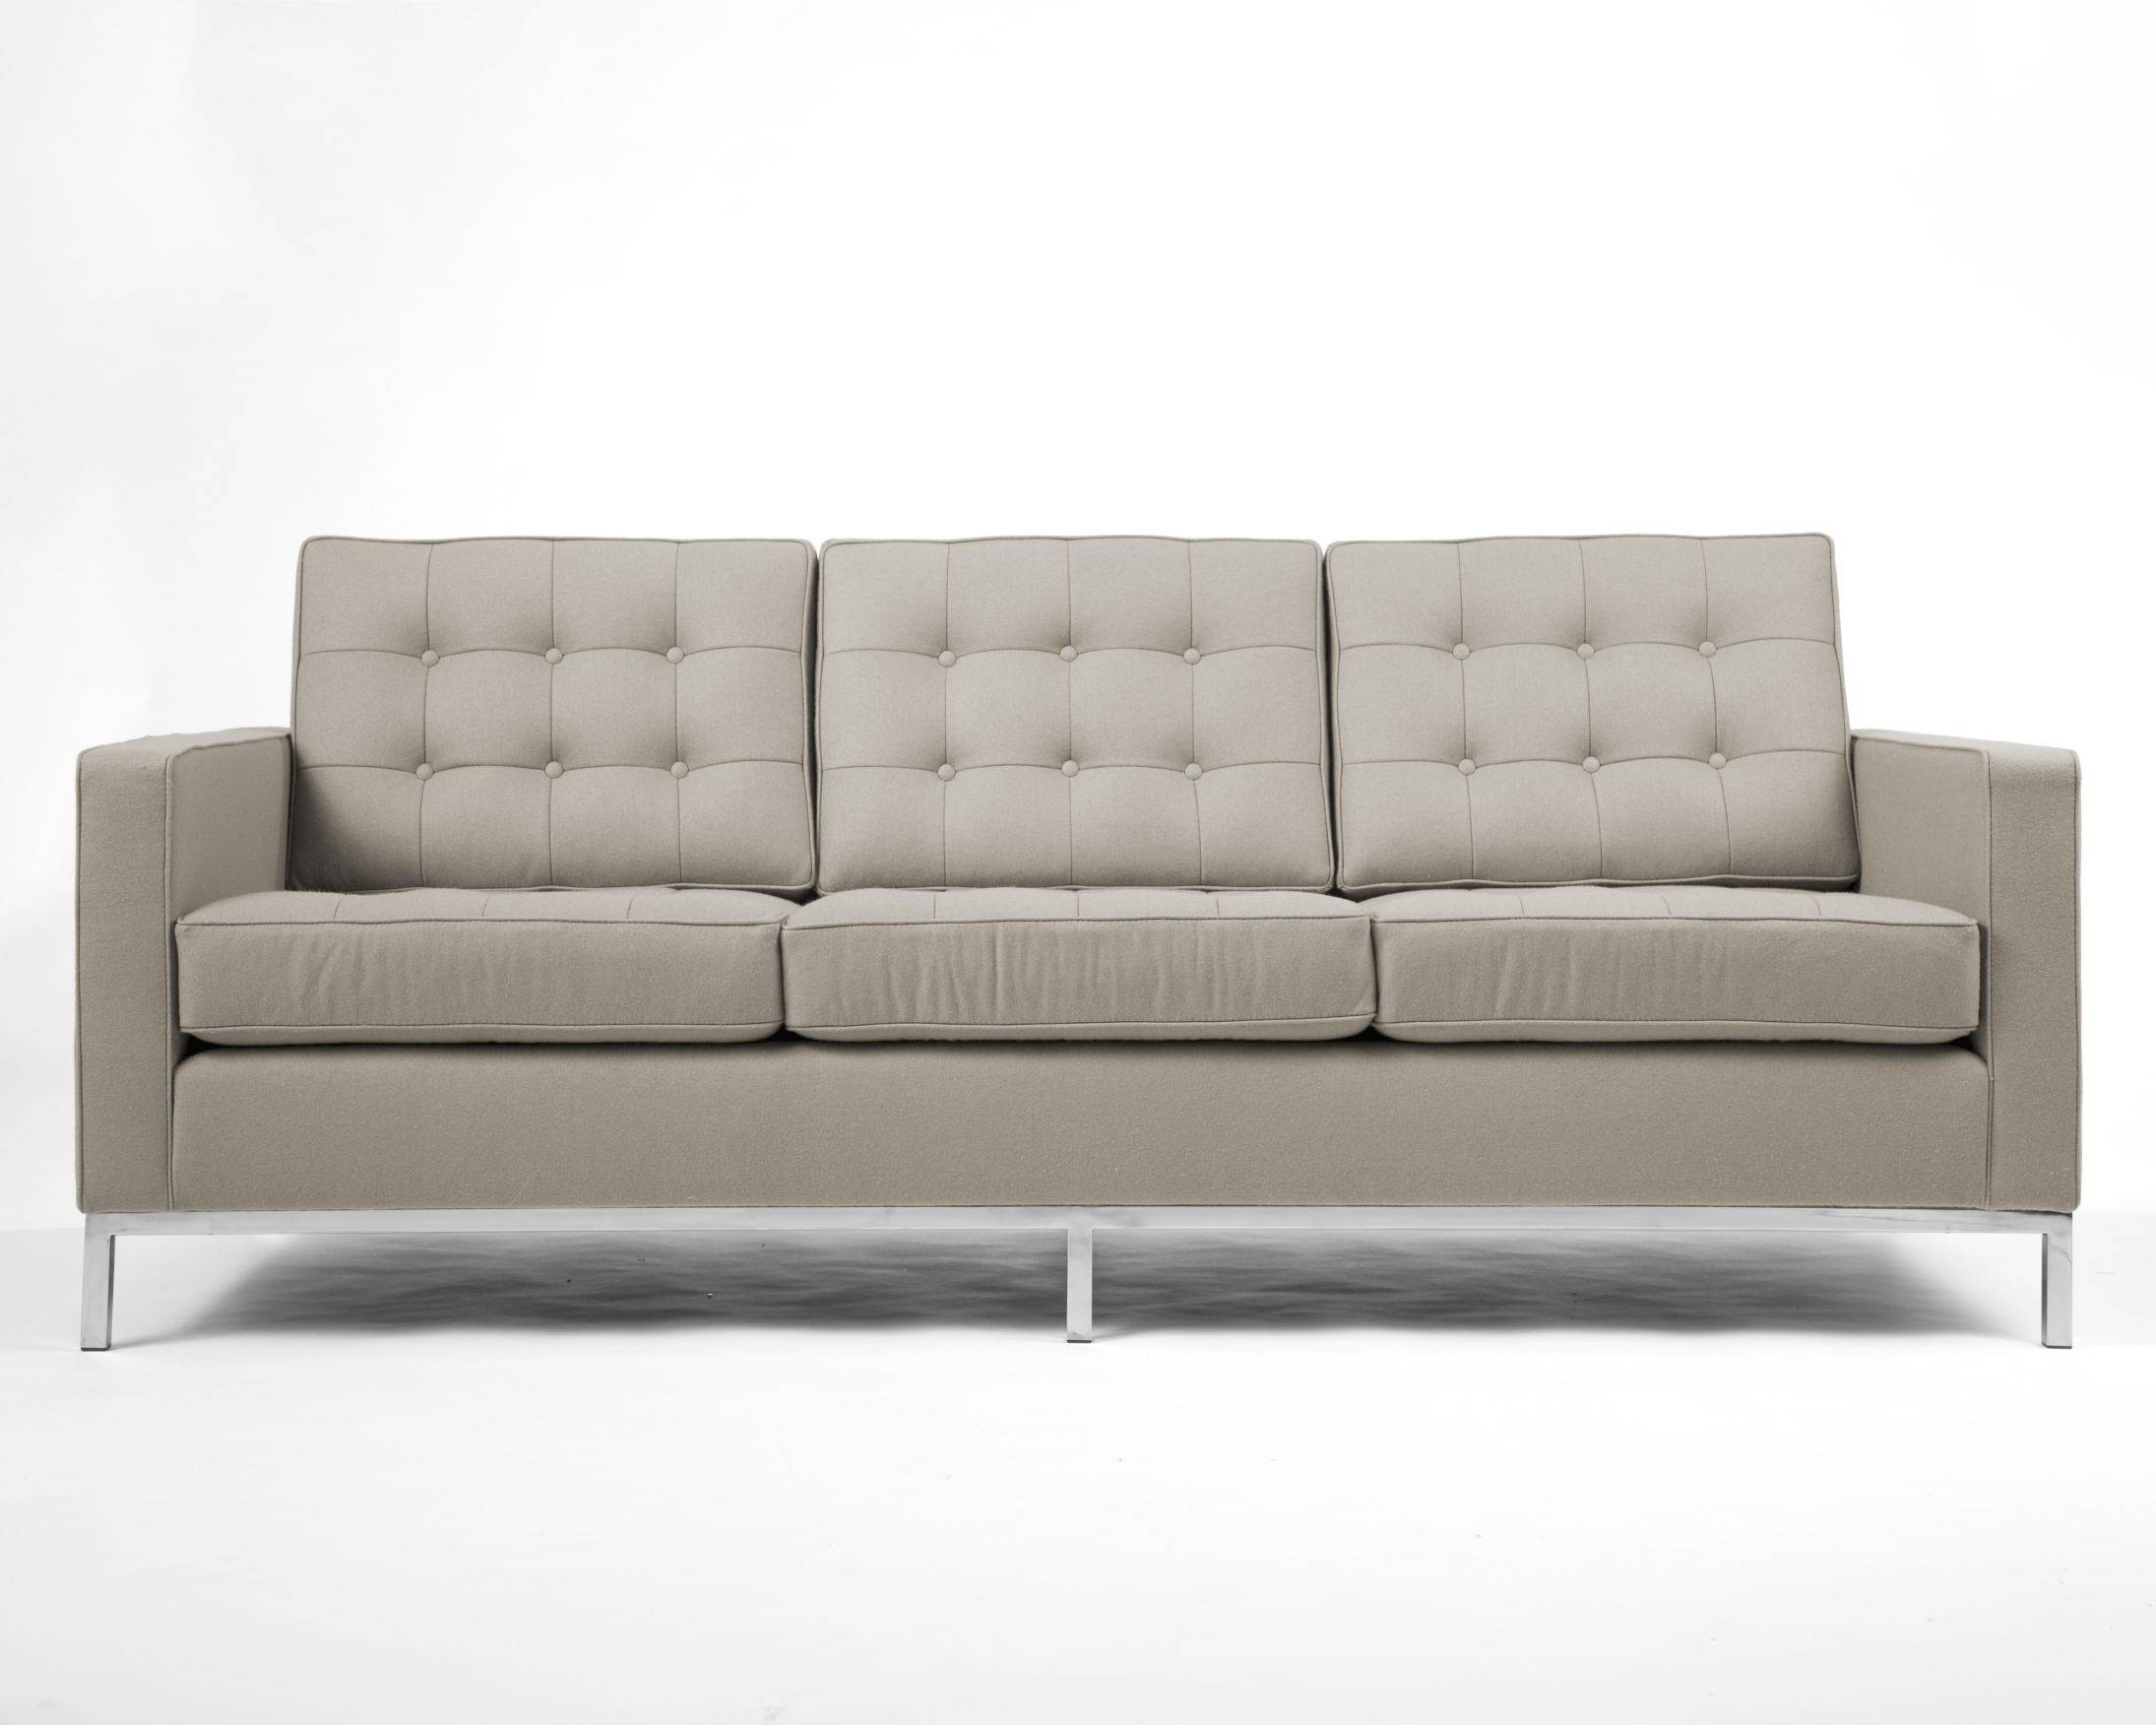 Florence Sofa | Reproduction | Mid Century Modern inside Florence Sofas (Image 17 of 30)